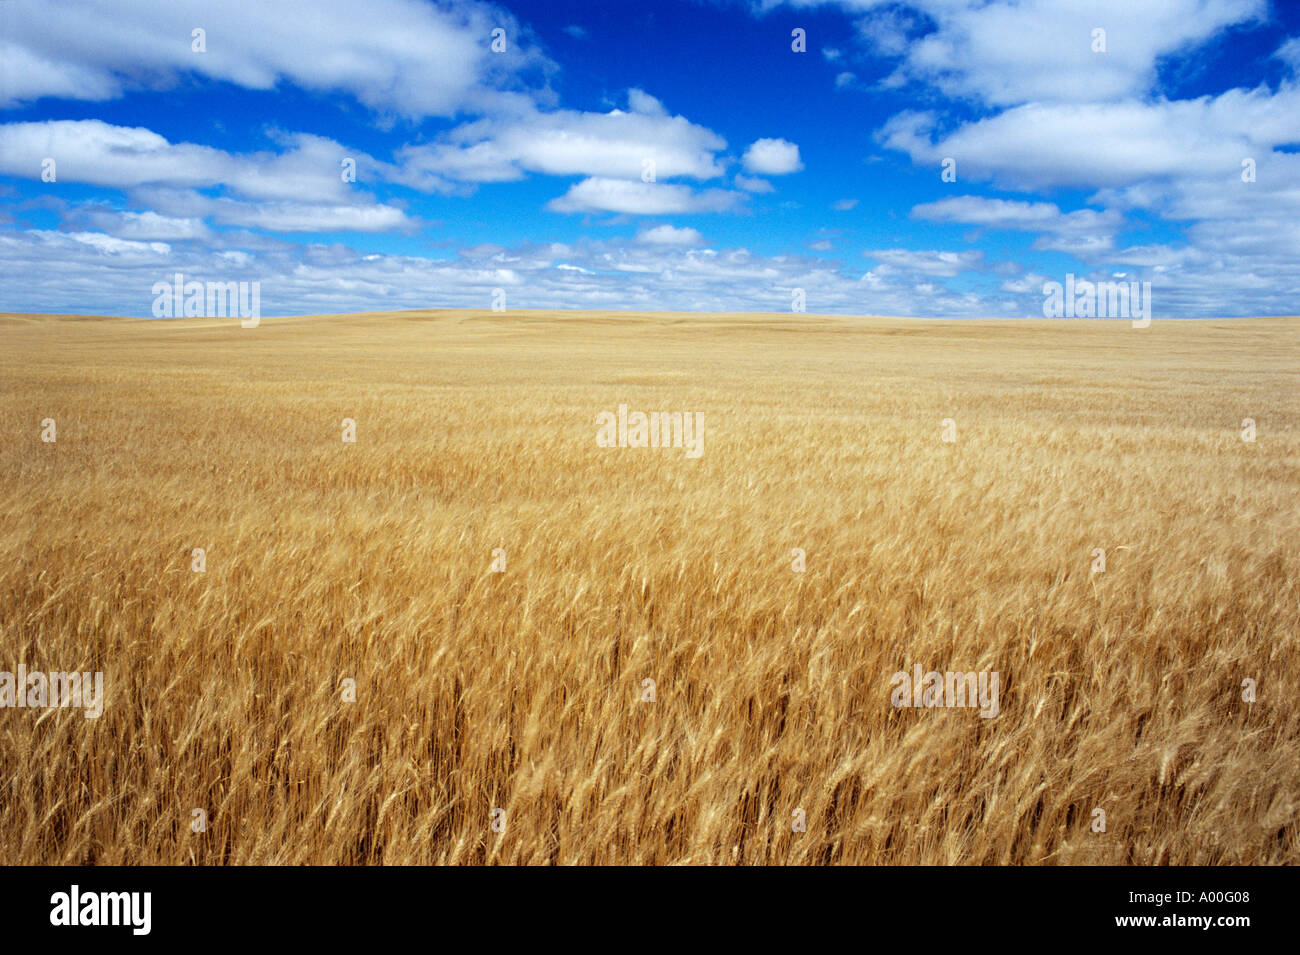 Golden wheat awaits harvest under cloud filled sky Watford City North Dakota Stock Photo